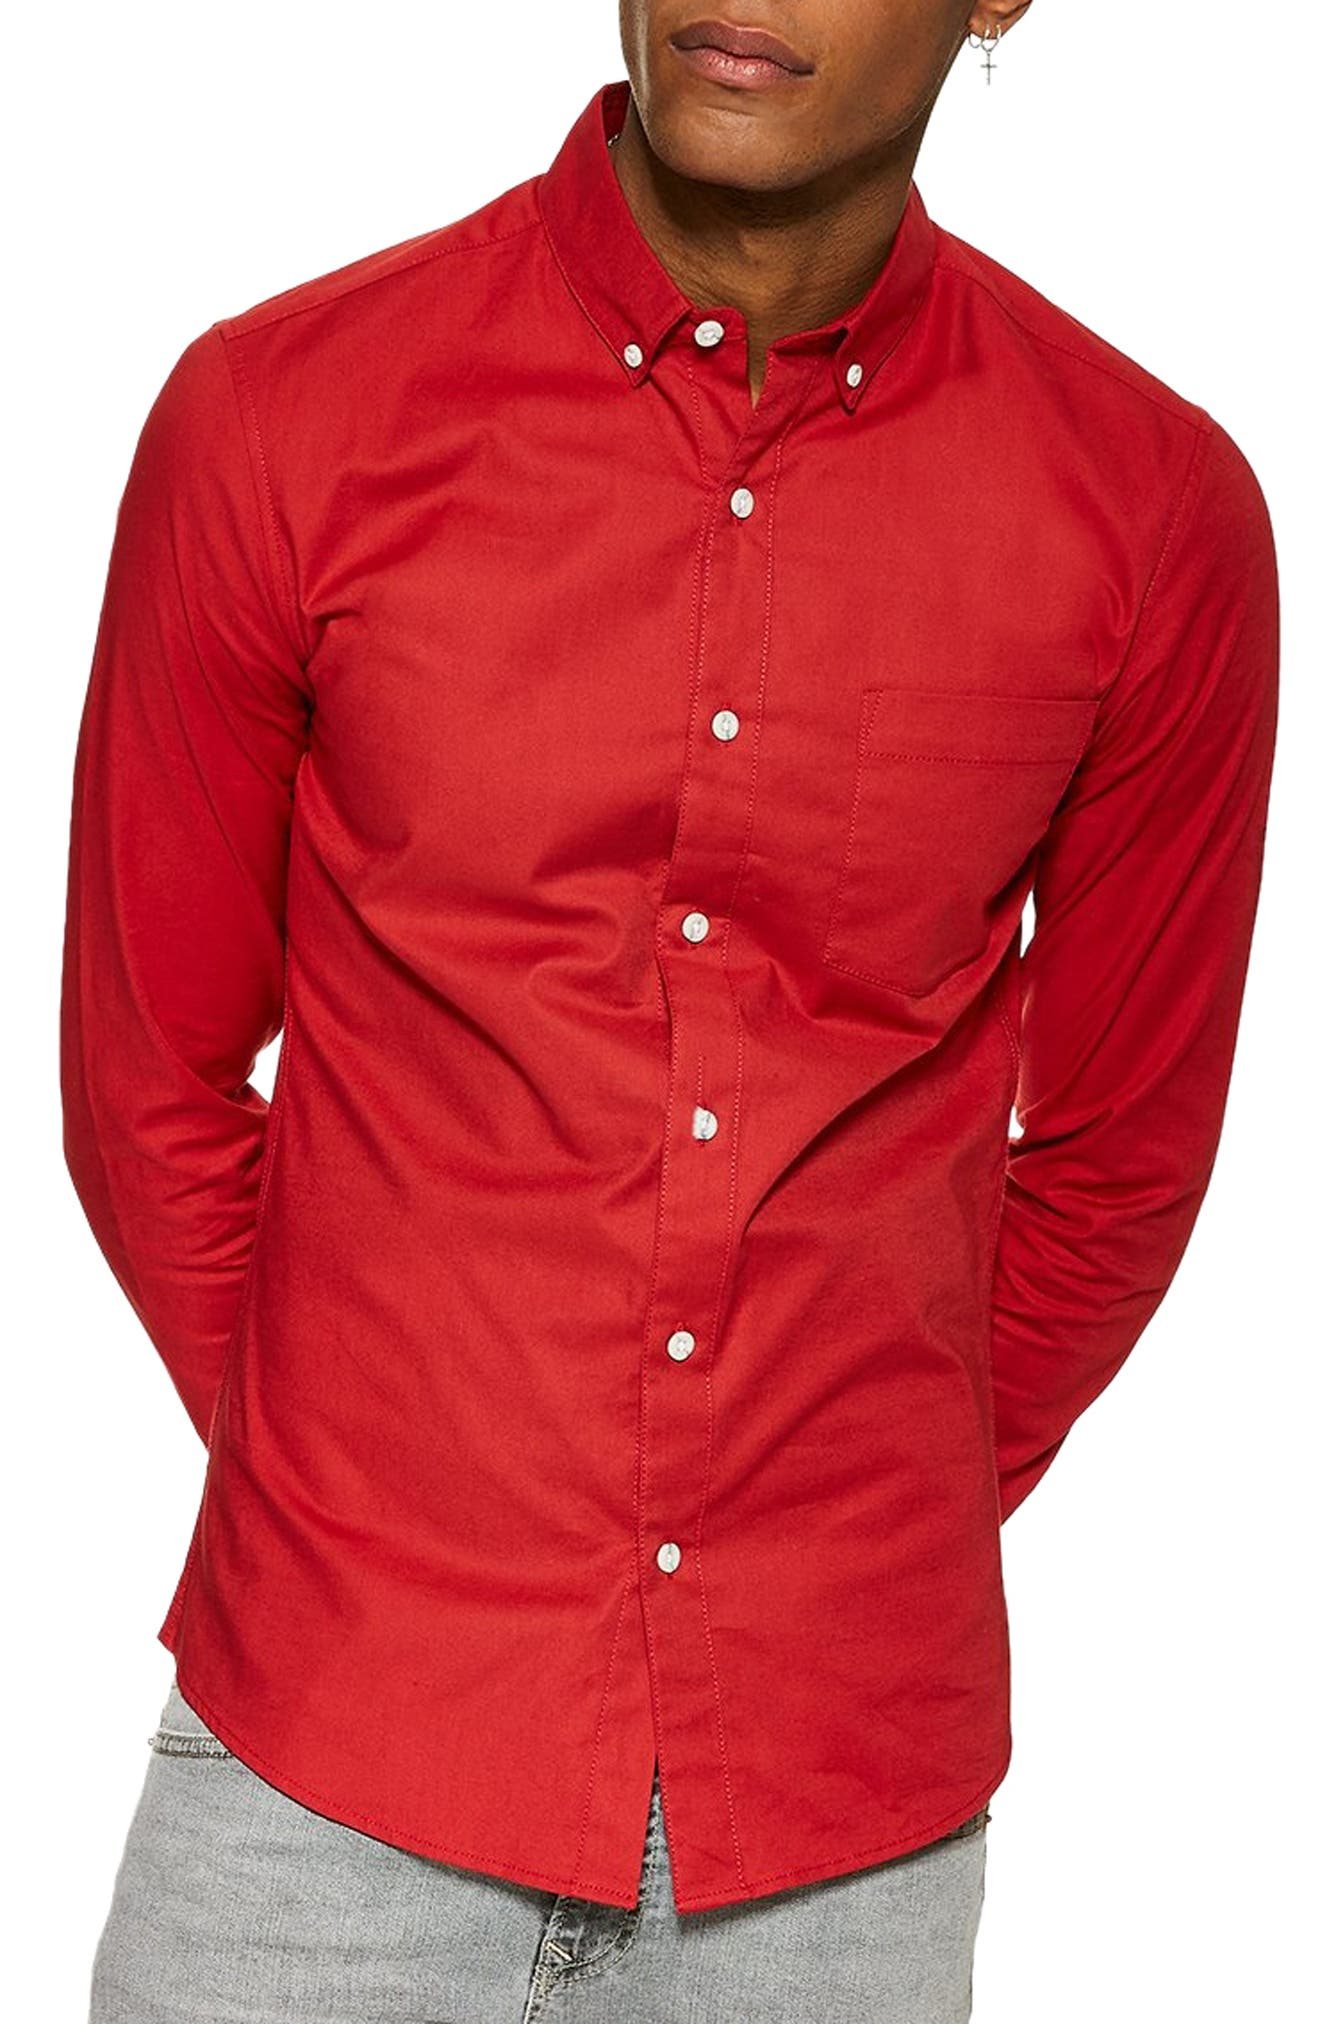 Topman Stretch Solid Sport Shirt, Red